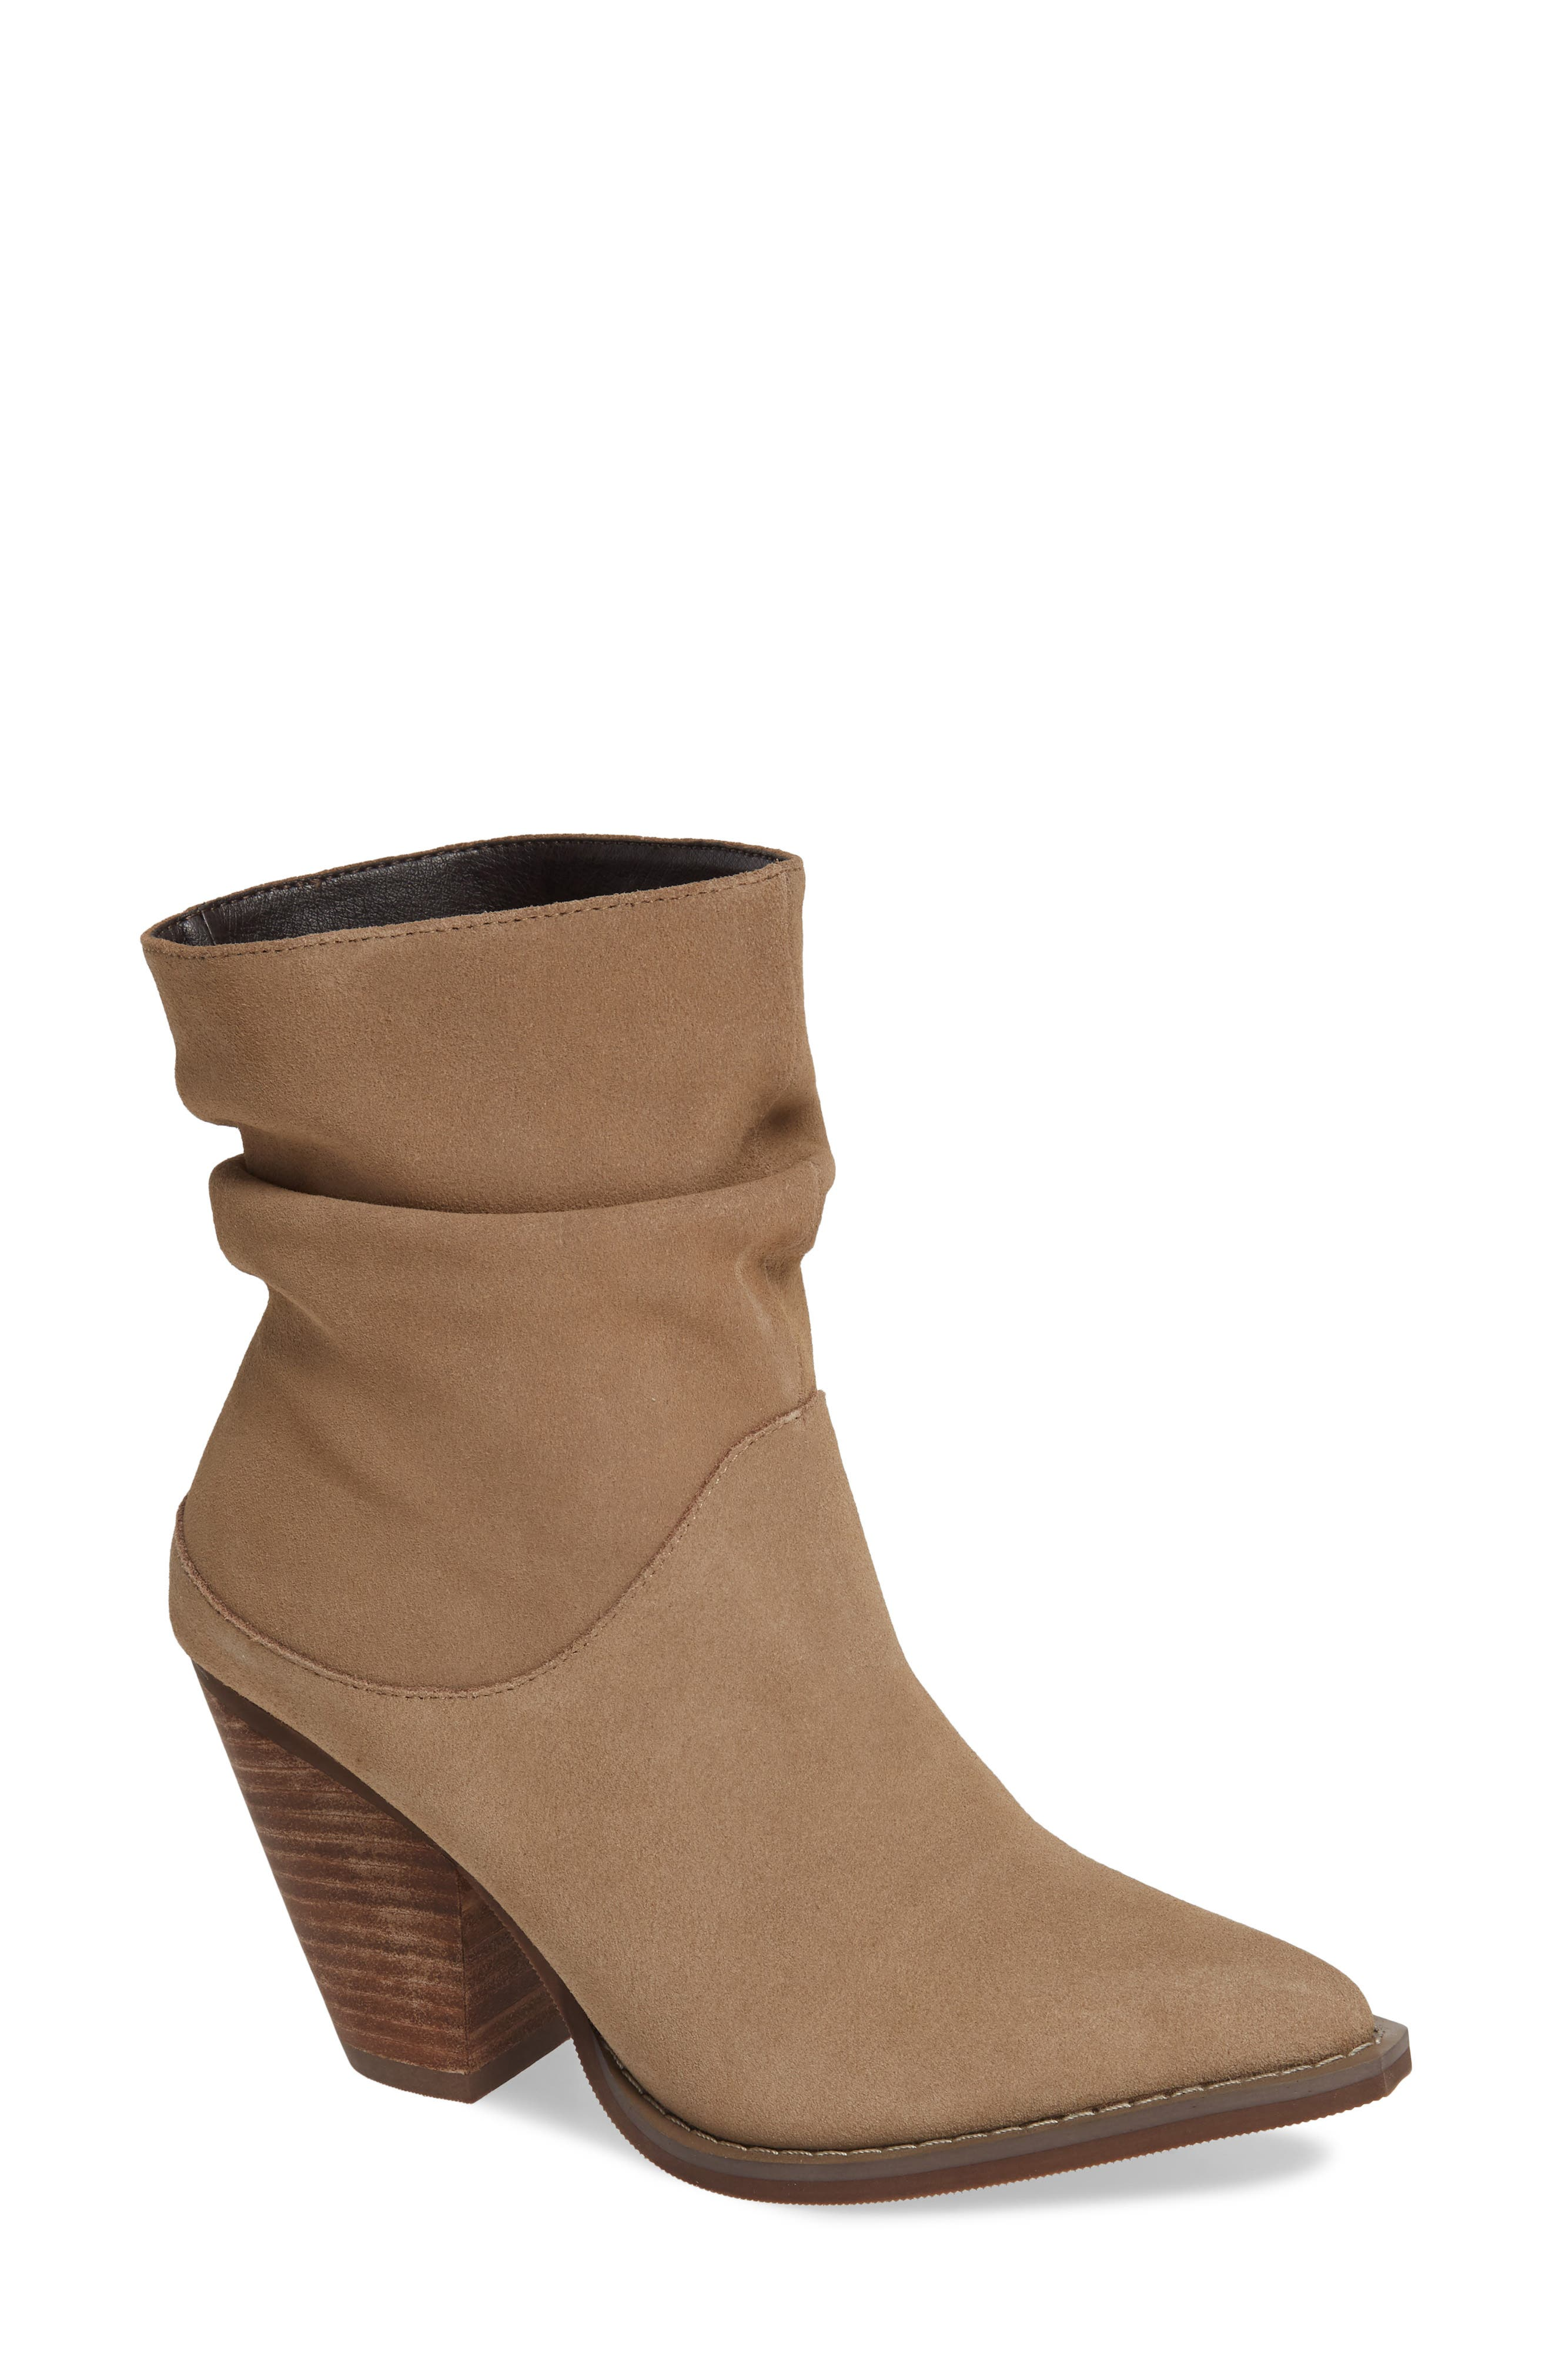 Jane And The Shoe Lilian Bootie